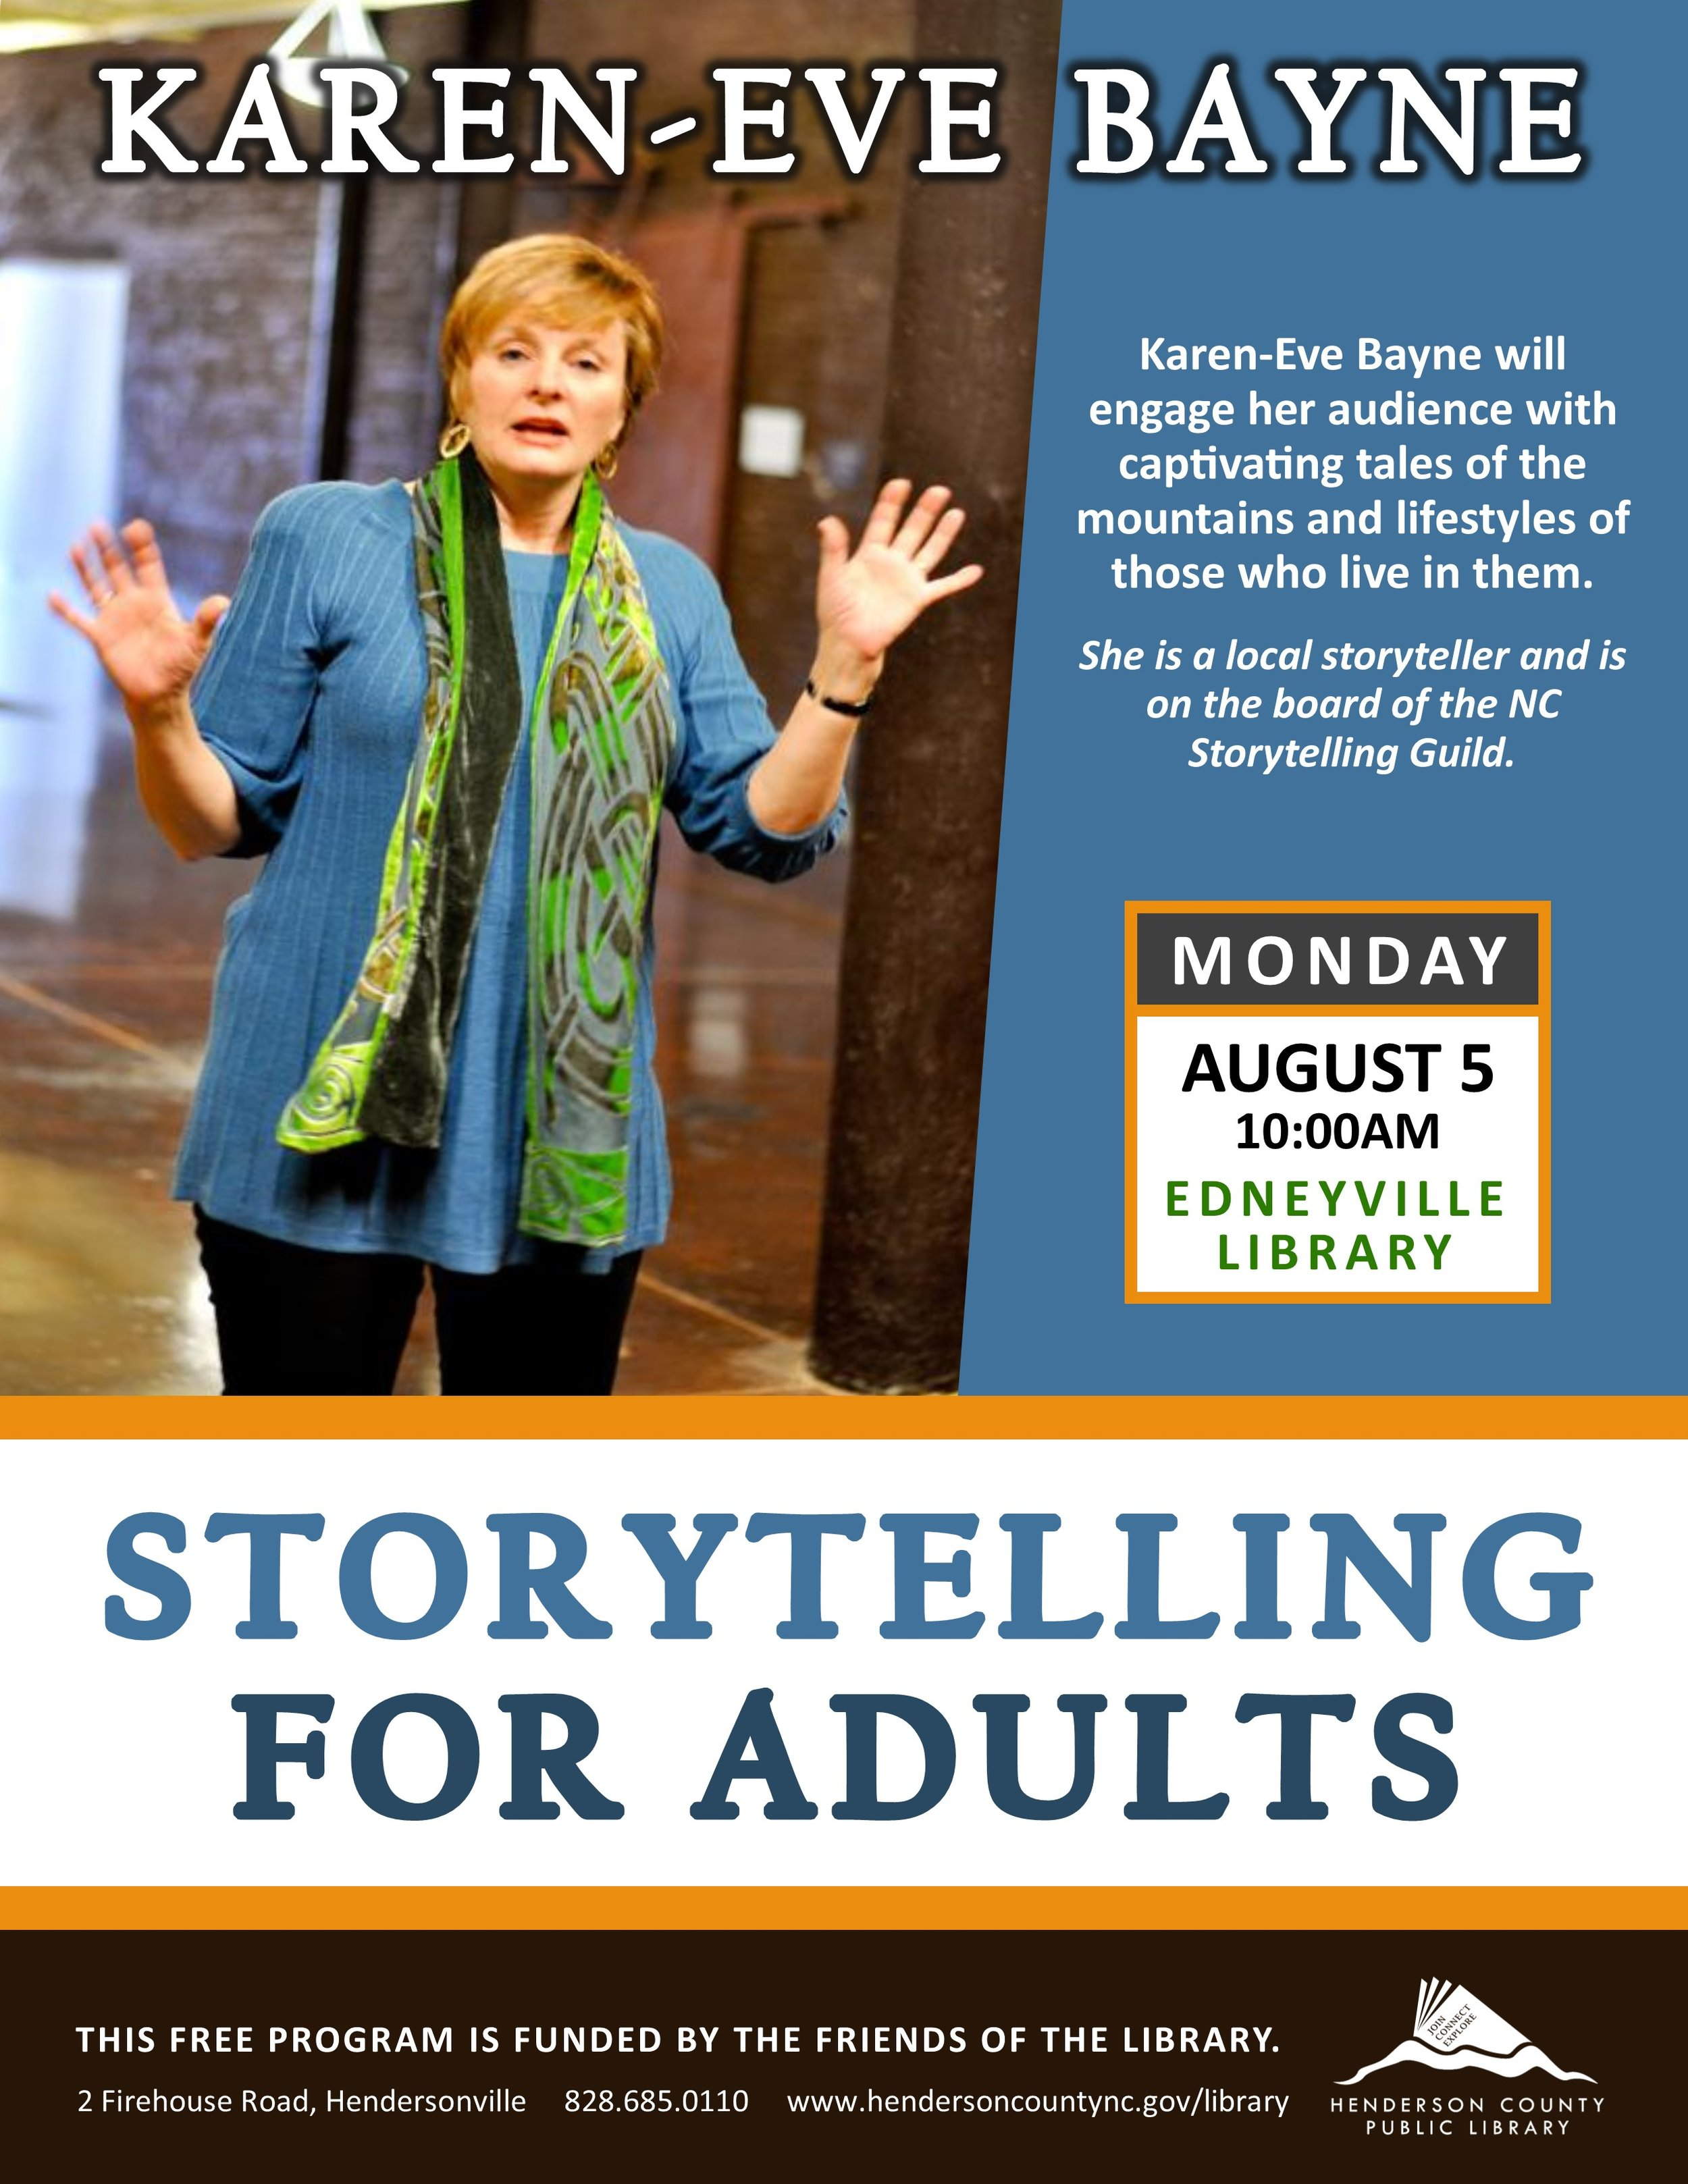 ED- Storytelling for Adults with Karen-Eve Bayne.jpg